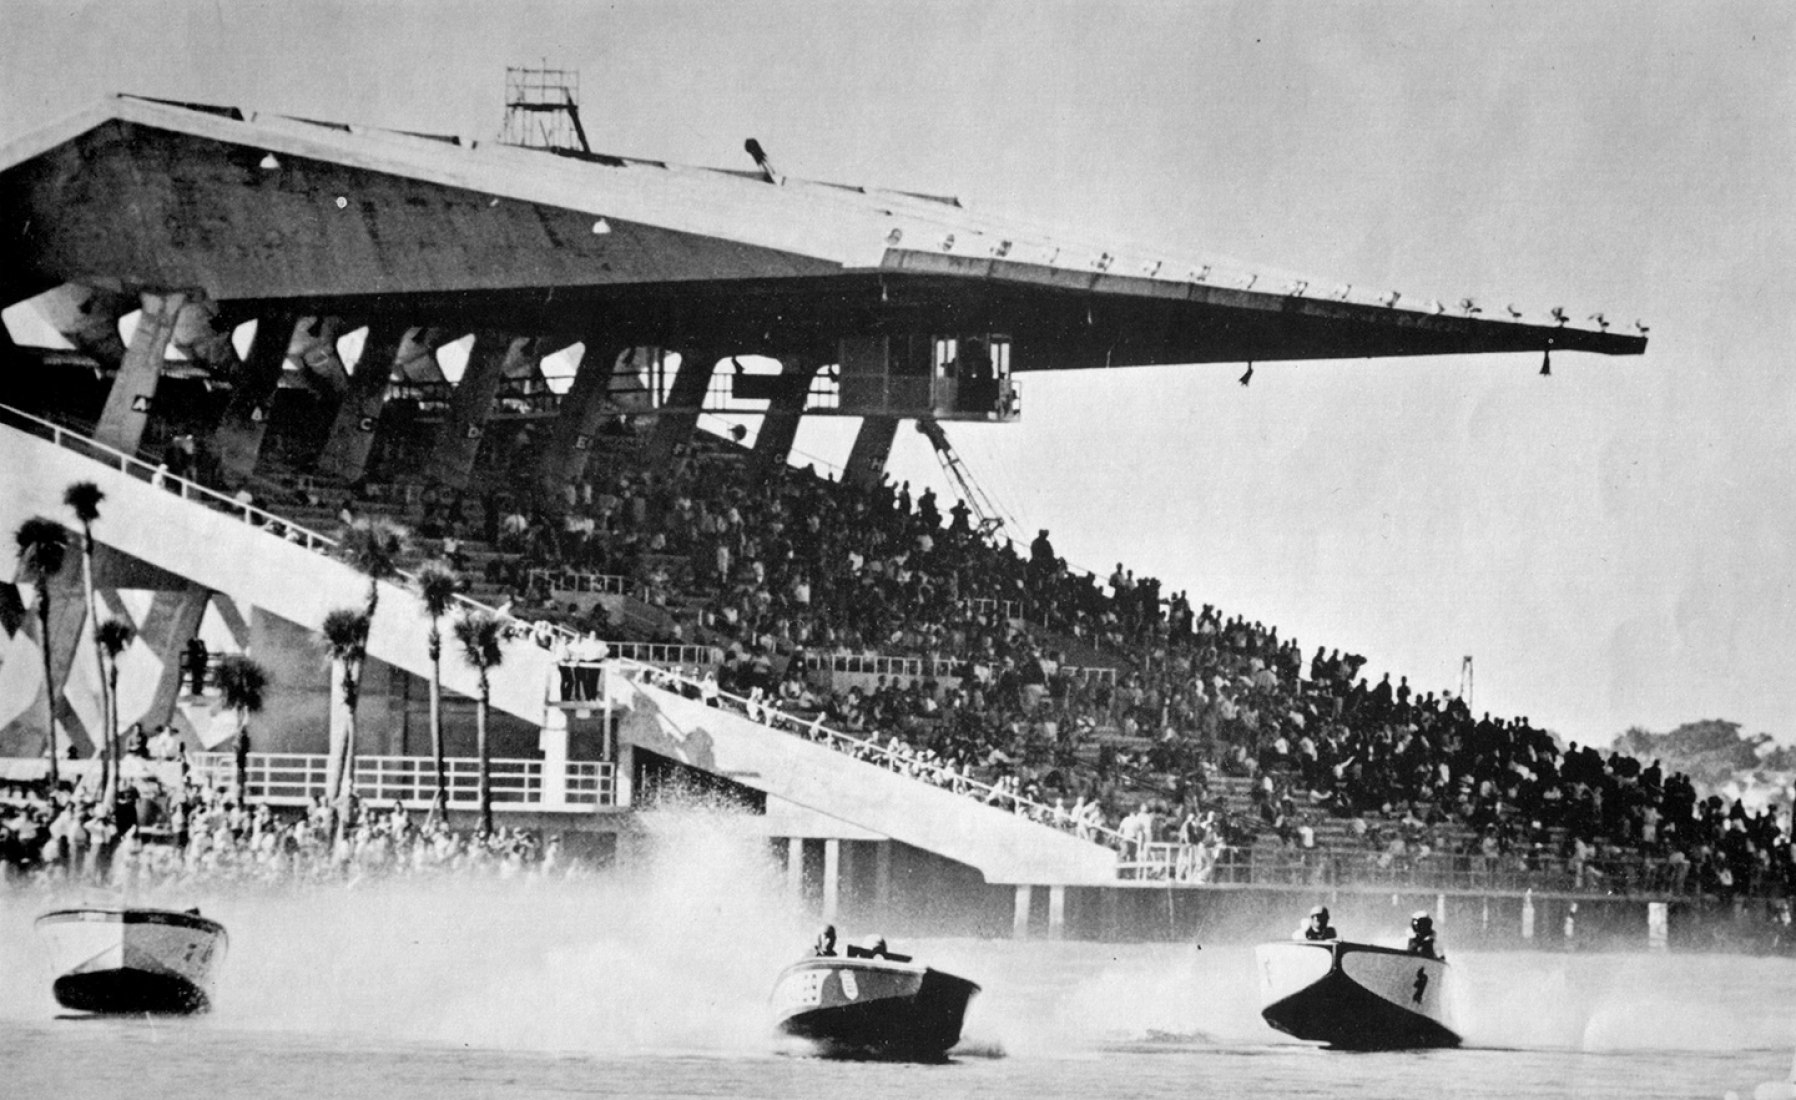 Speedboats racing in the basin, 1964. Image courtesy of World Monuments Fund.